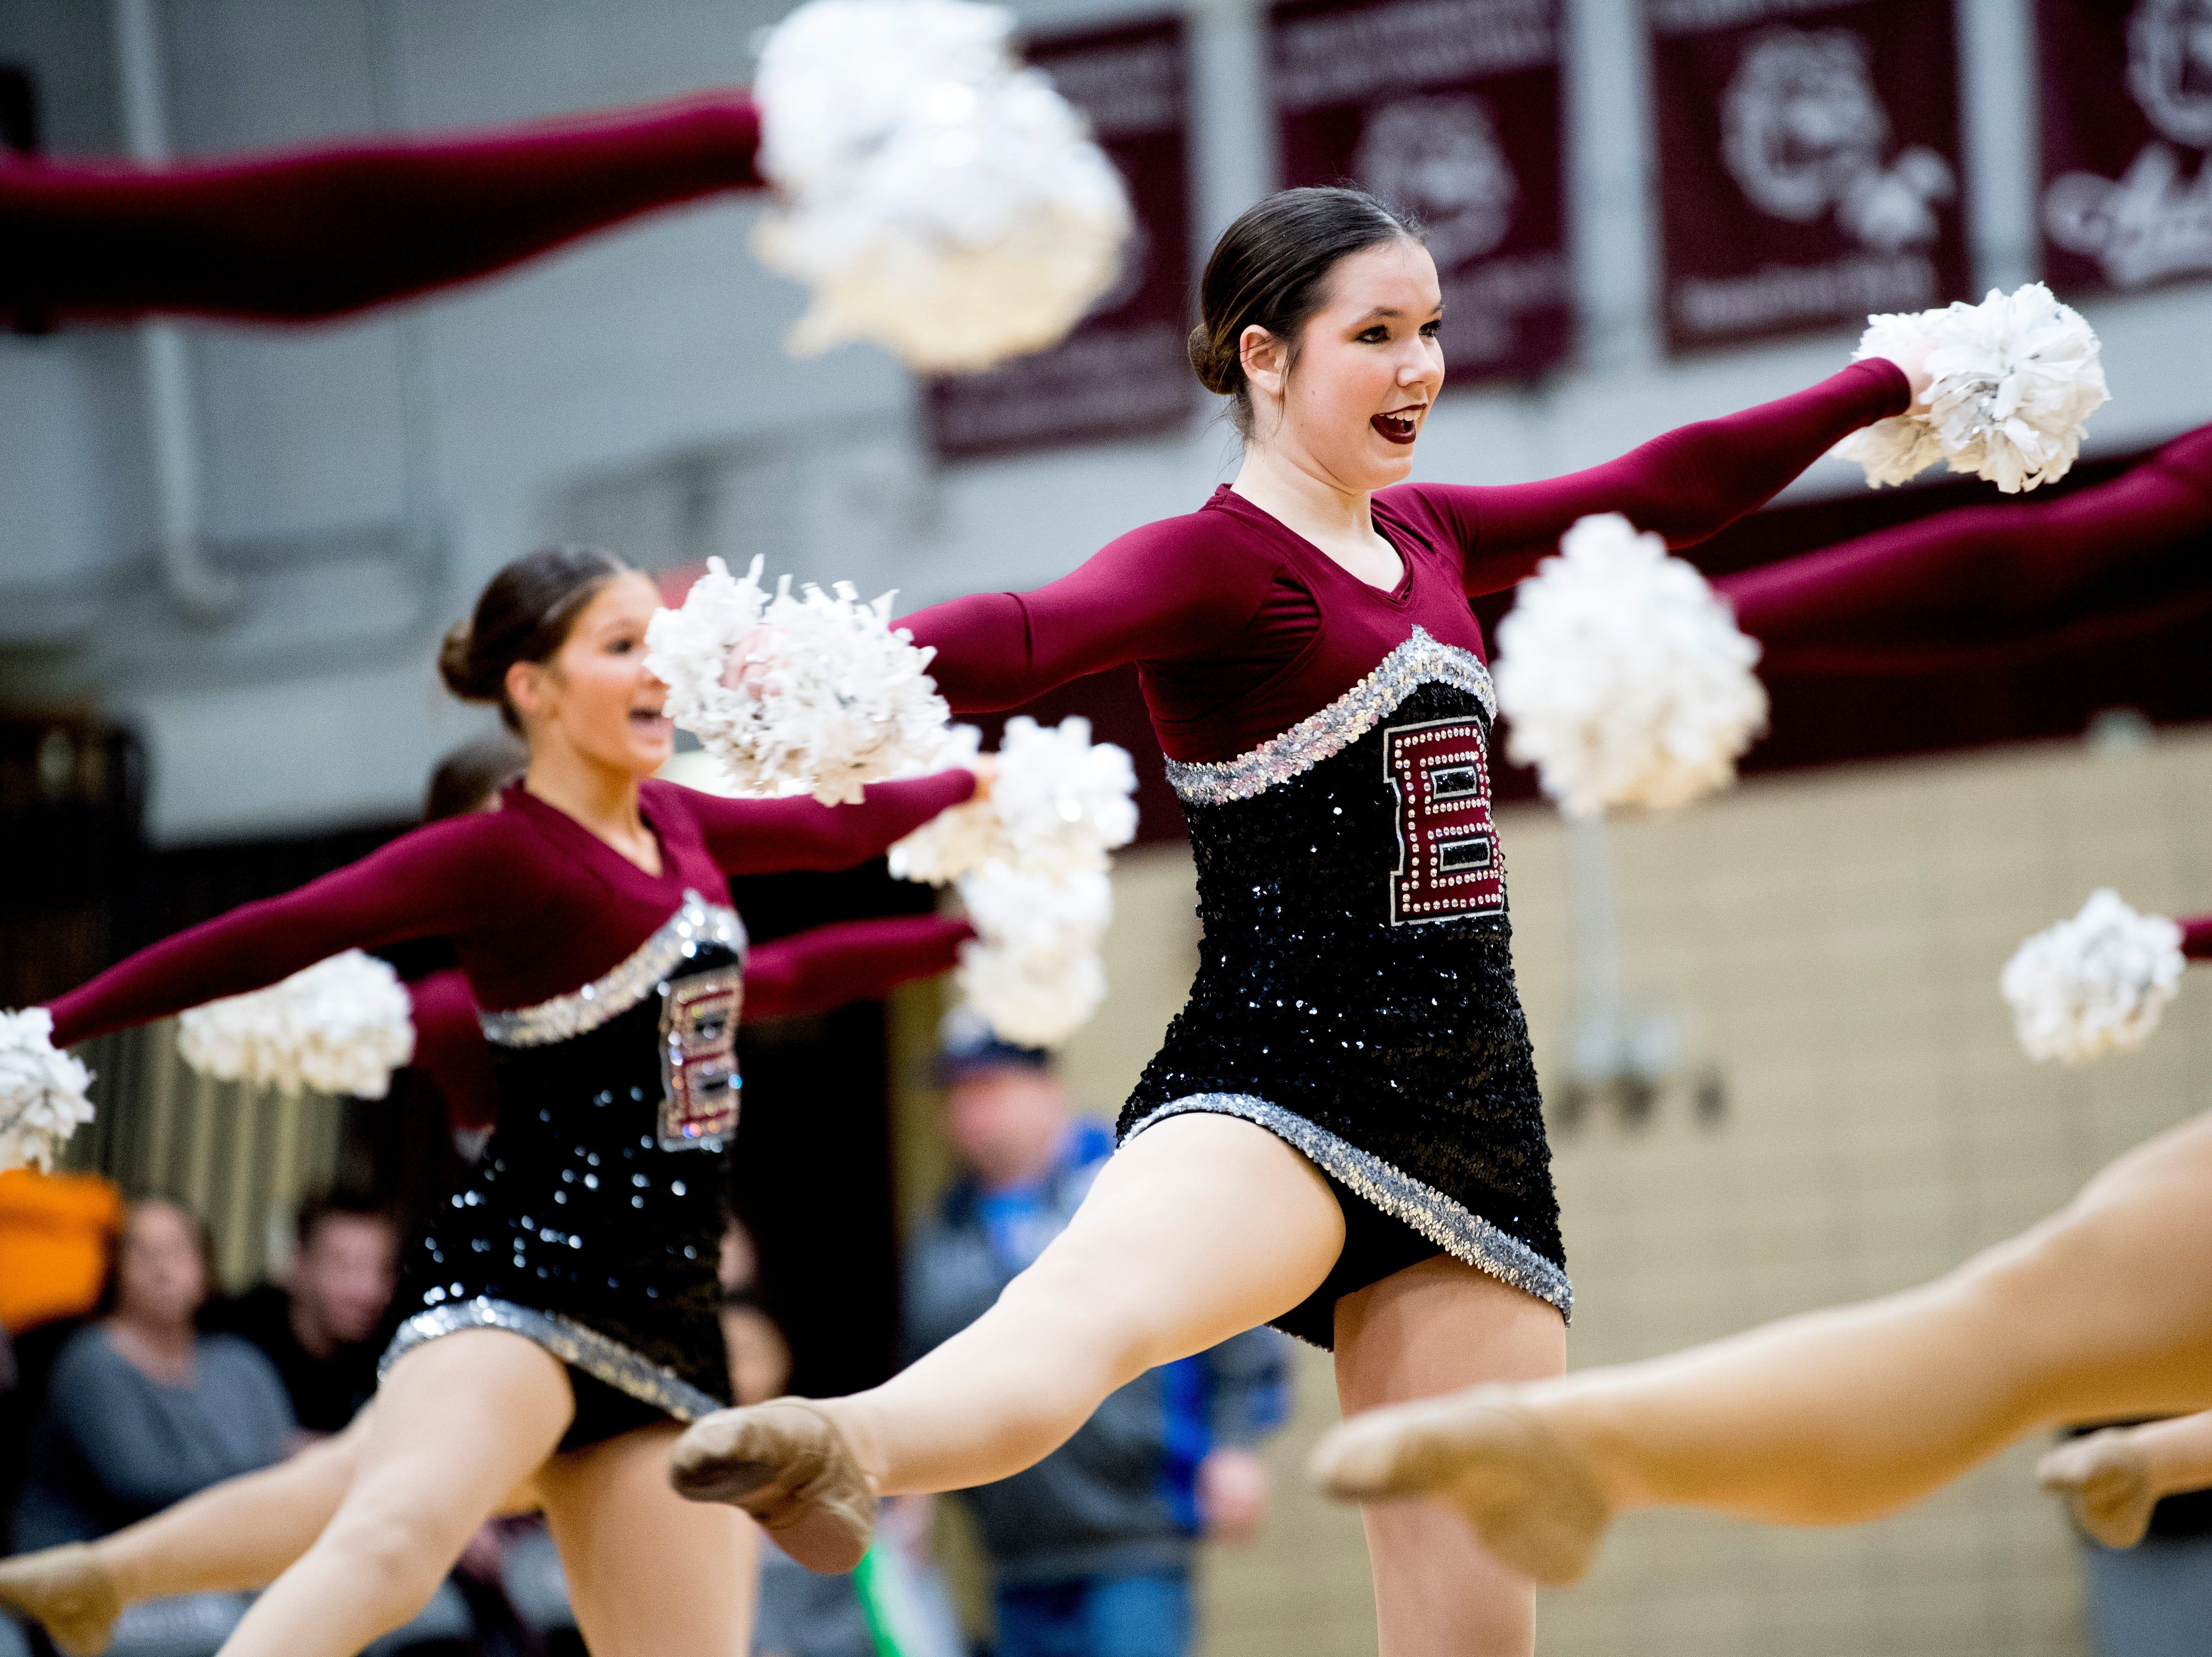 Bearden dance team members perform during a game between Bearden and Catholic at Bearden High School in Knoxville, Tennessee on Thursday, January 10, 2019.